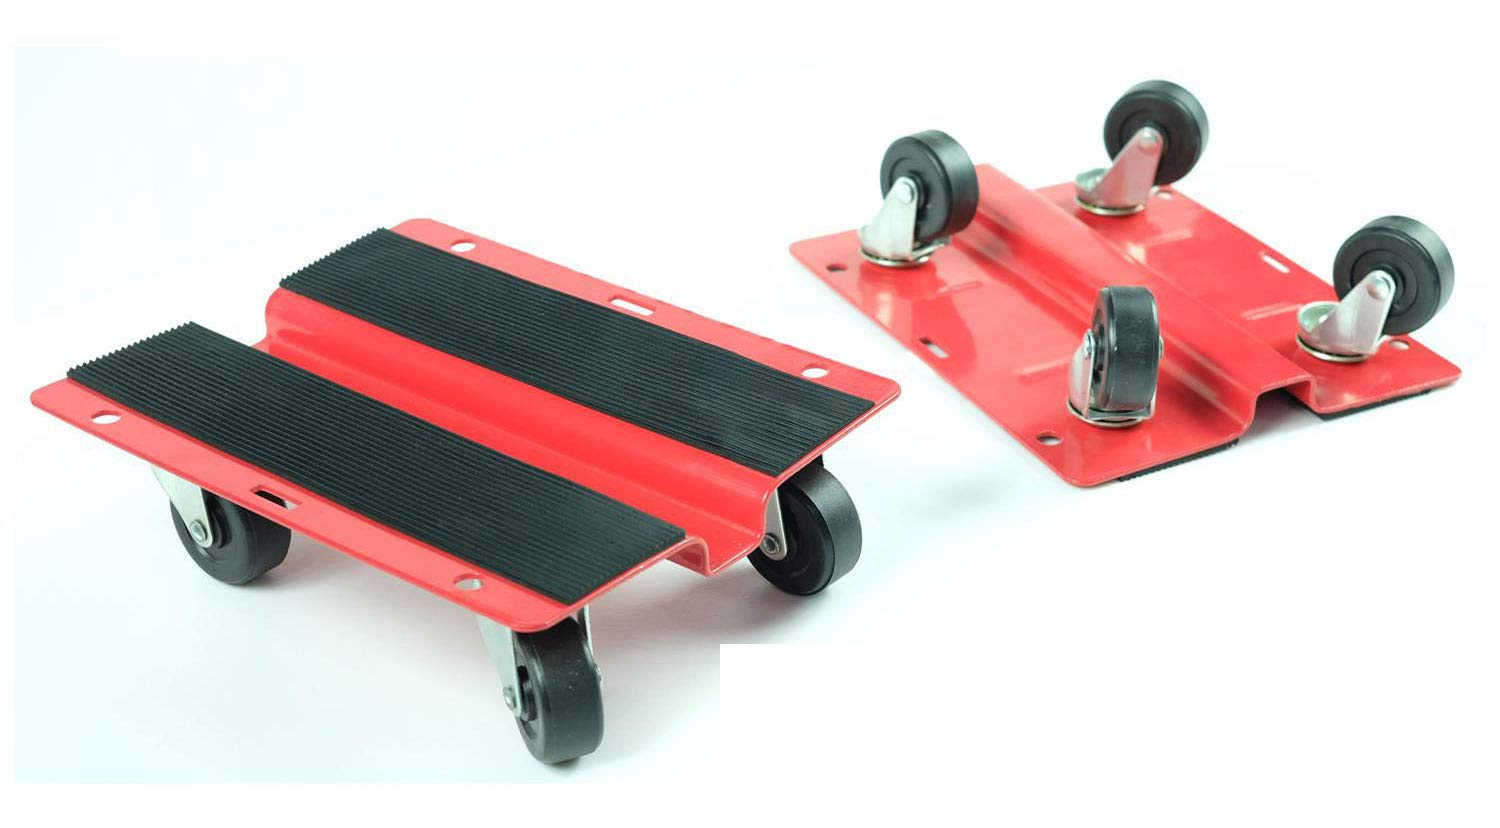 KASTFORCE KF2018 Utility Dolly Kit of Pair 8 inch x 10 inch Steel Dollies, Snowmobile Dolly, Panel Dolly, Material Mover